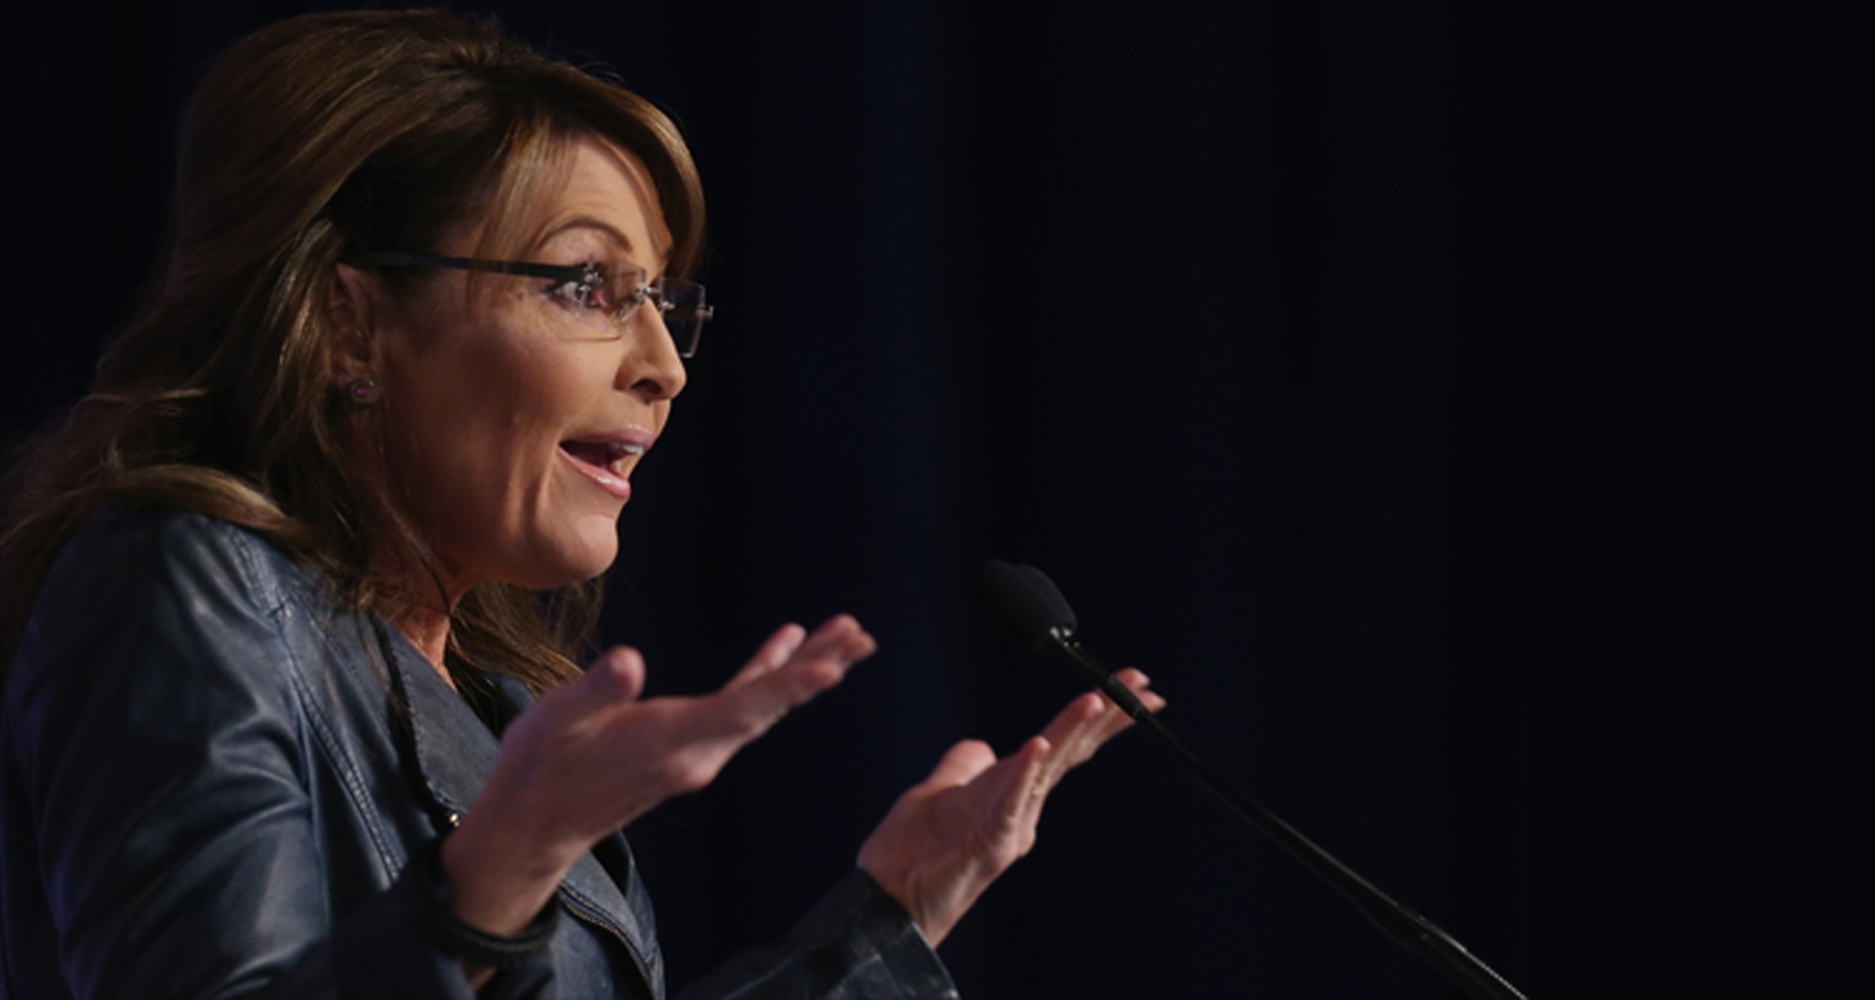 Sarah Palin Raised $25,000 For Hillary Clinton's Election Campaign